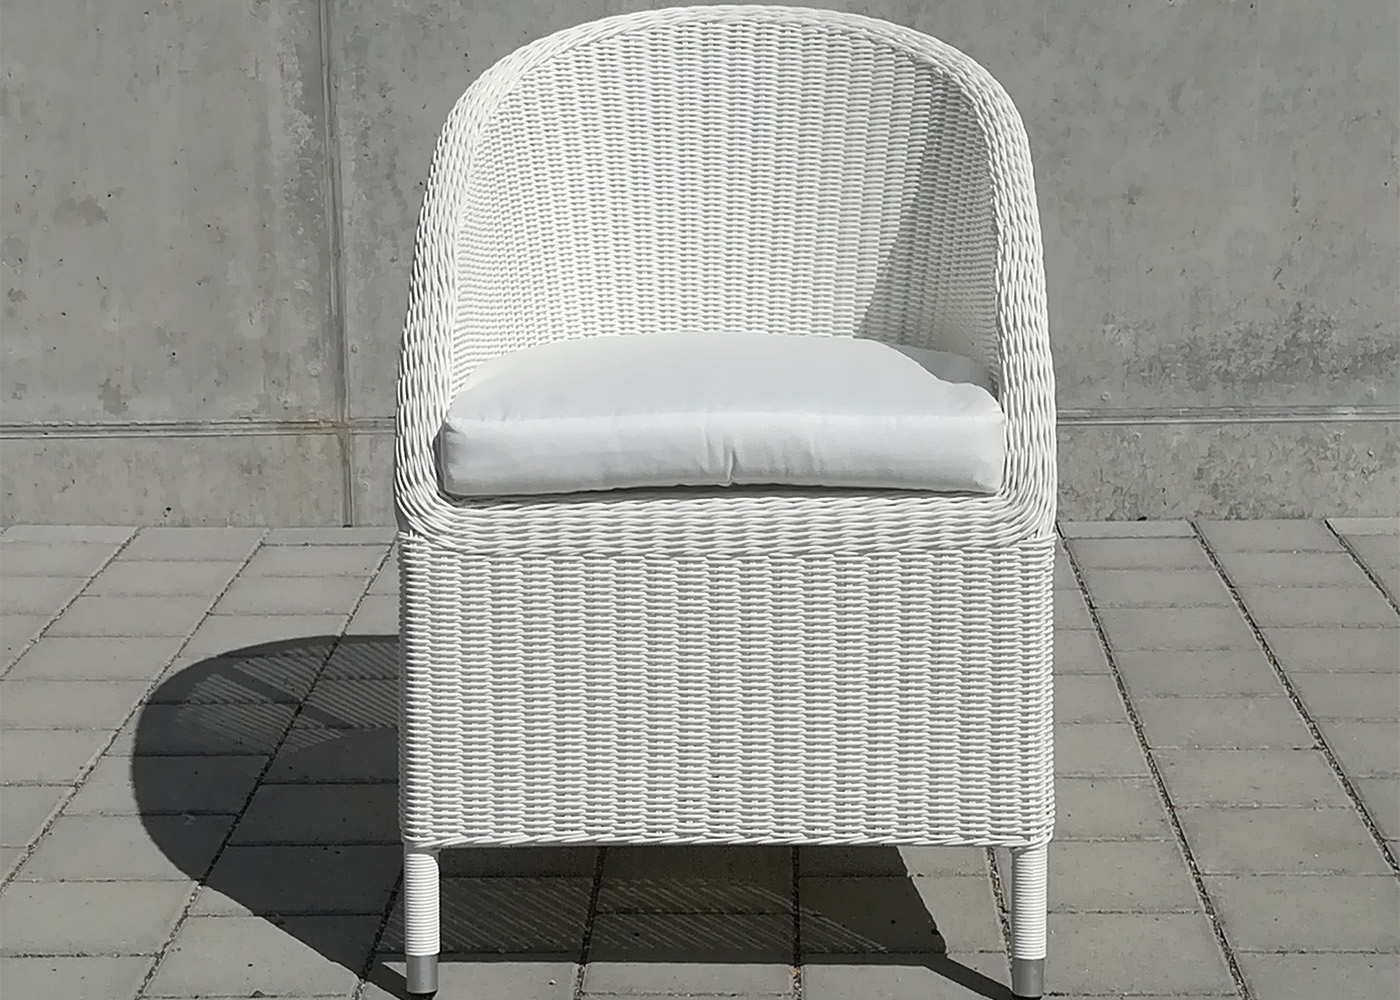 fauteuil crapaud pour jardin en wicker blanc ou taupe chez ksl living. Black Bedroom Furniture Sets. Home Design Ideas